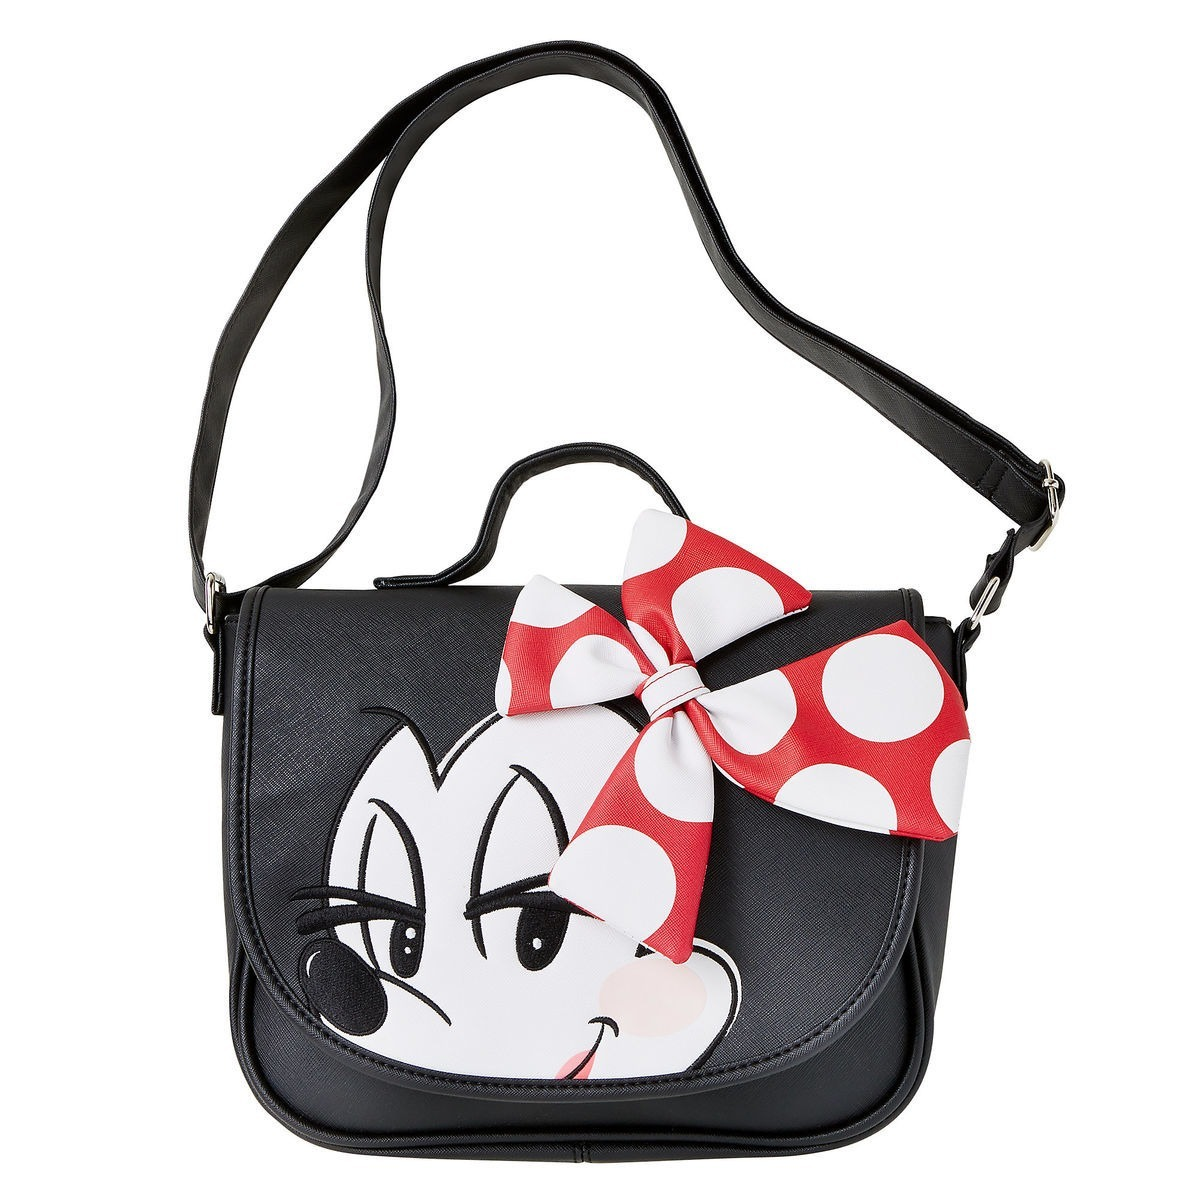 mouse bolsa 2018 disney crossbody loungefly Cargando zoom minnie qFwaxz